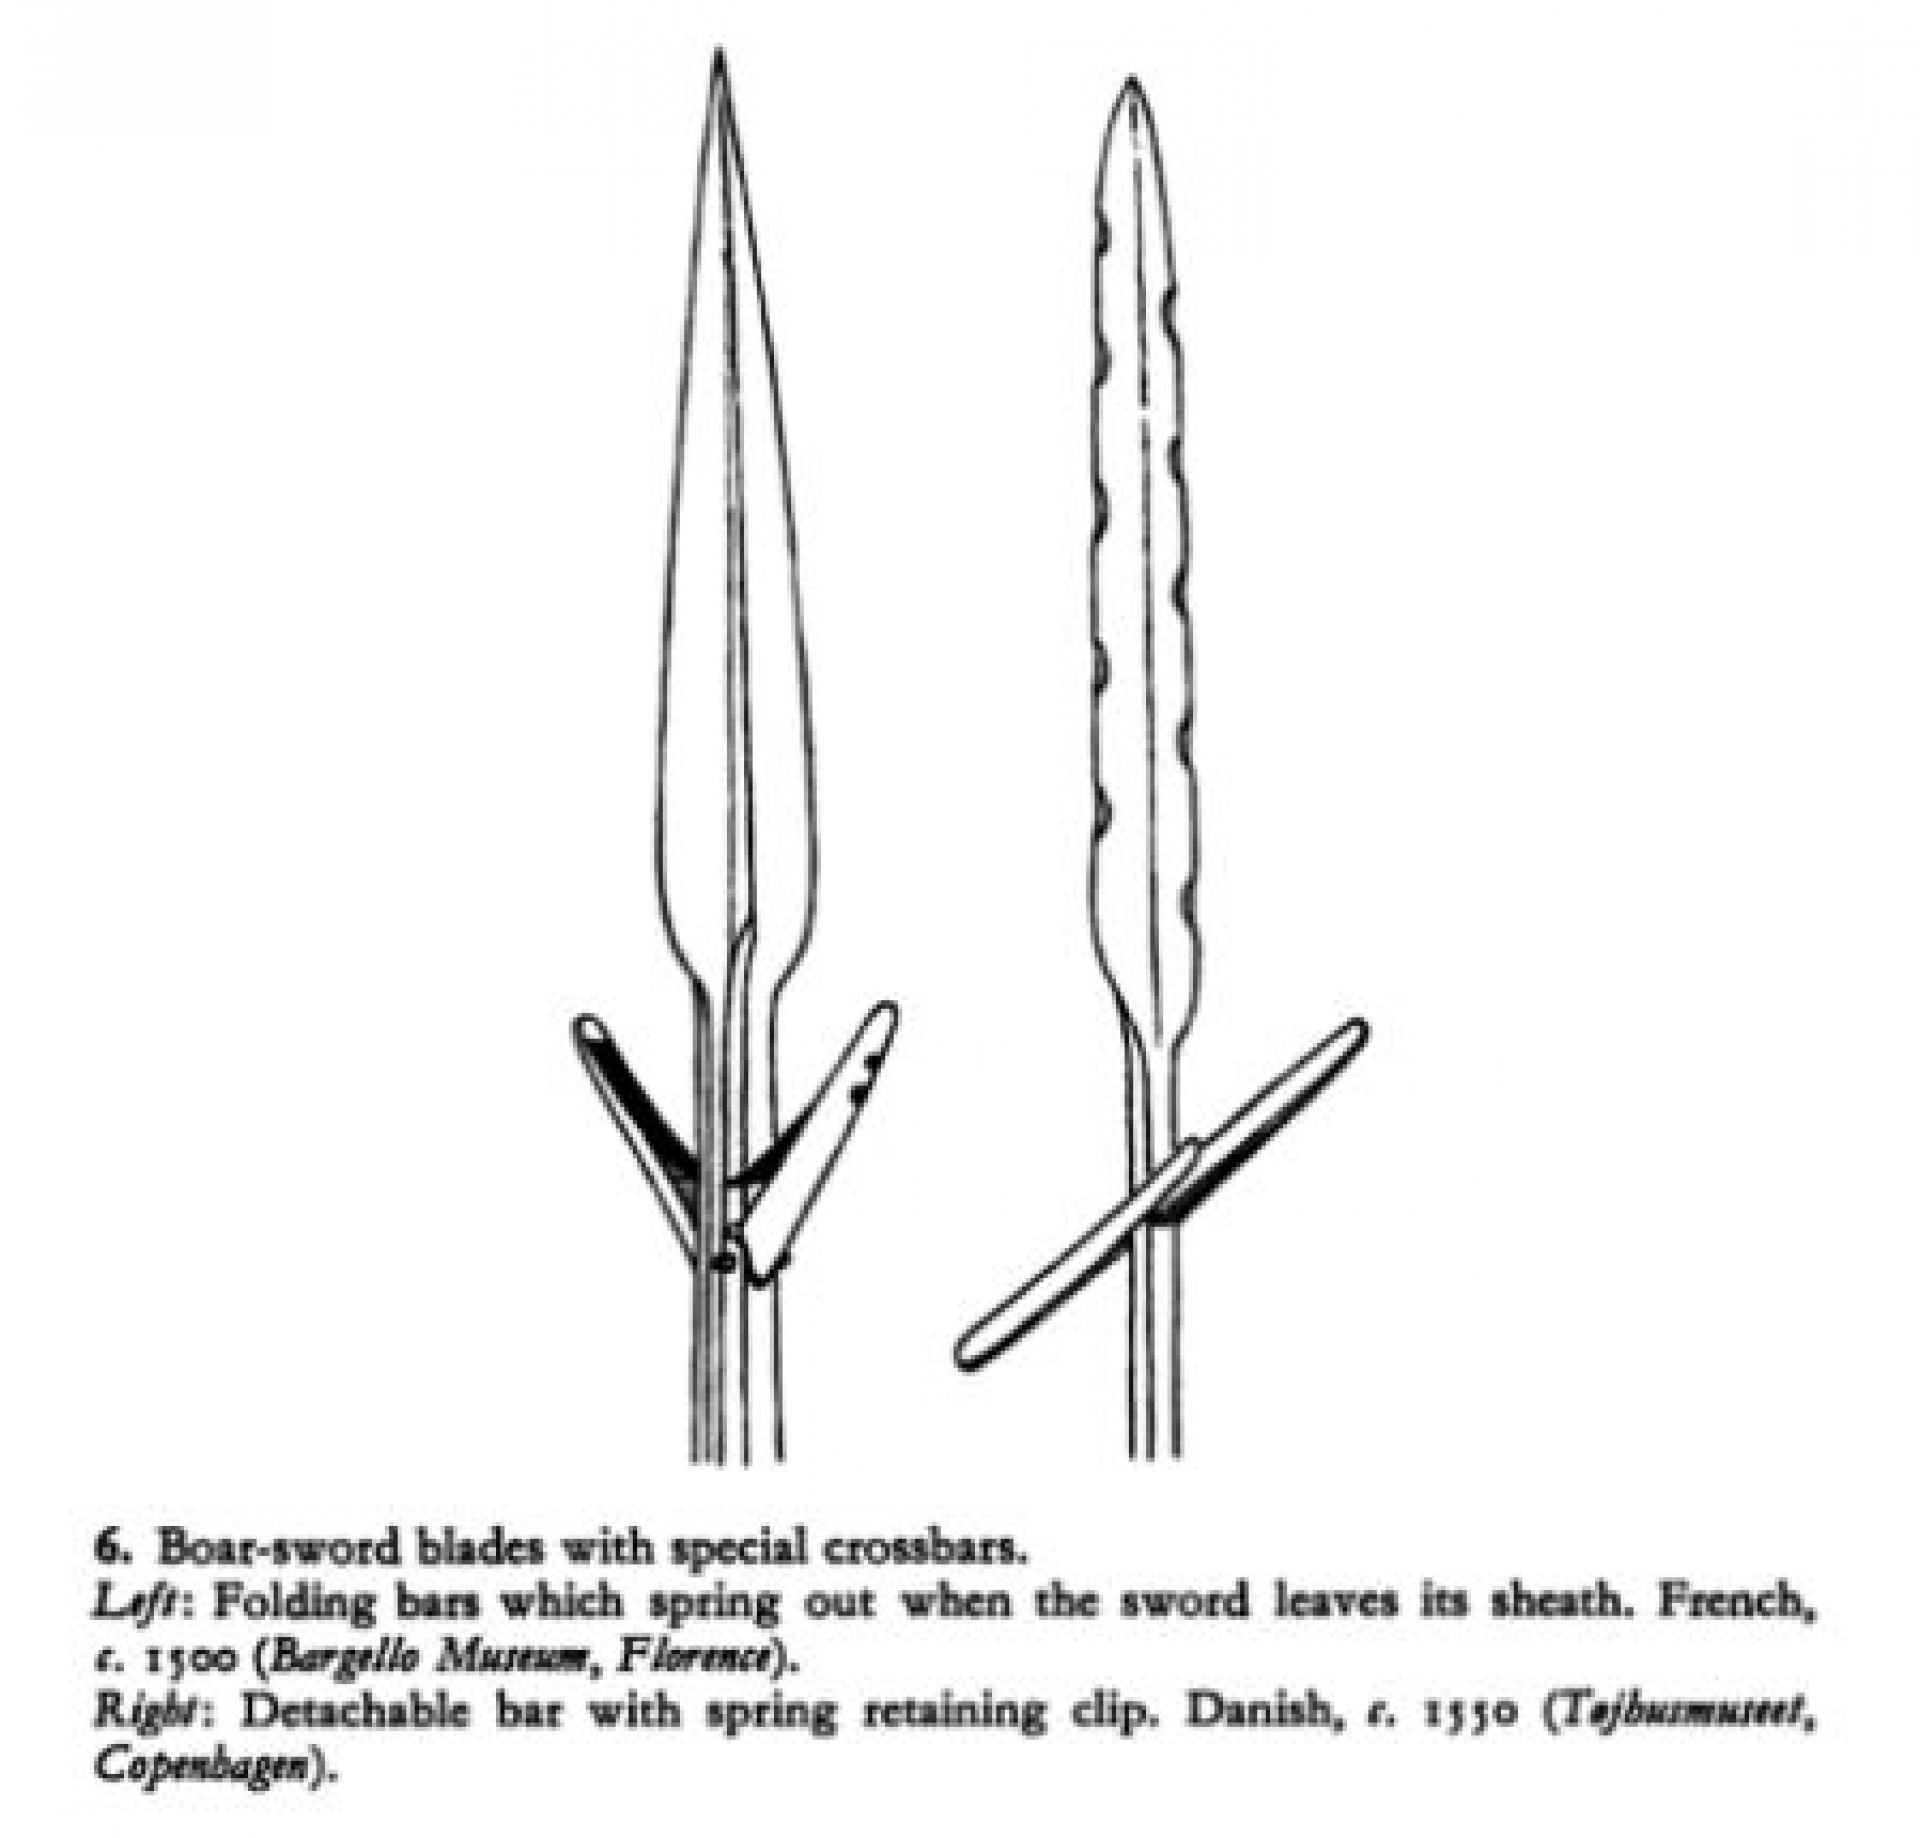 Boar sword的使用方法跟Boar spear 差不多,也是可以站穩,讓獵物衝過來再刺穿牠。(《Hunting Weapons: From the Middle Ages to the Twentieth Century》,Howard L. Blackmore ,P.10)